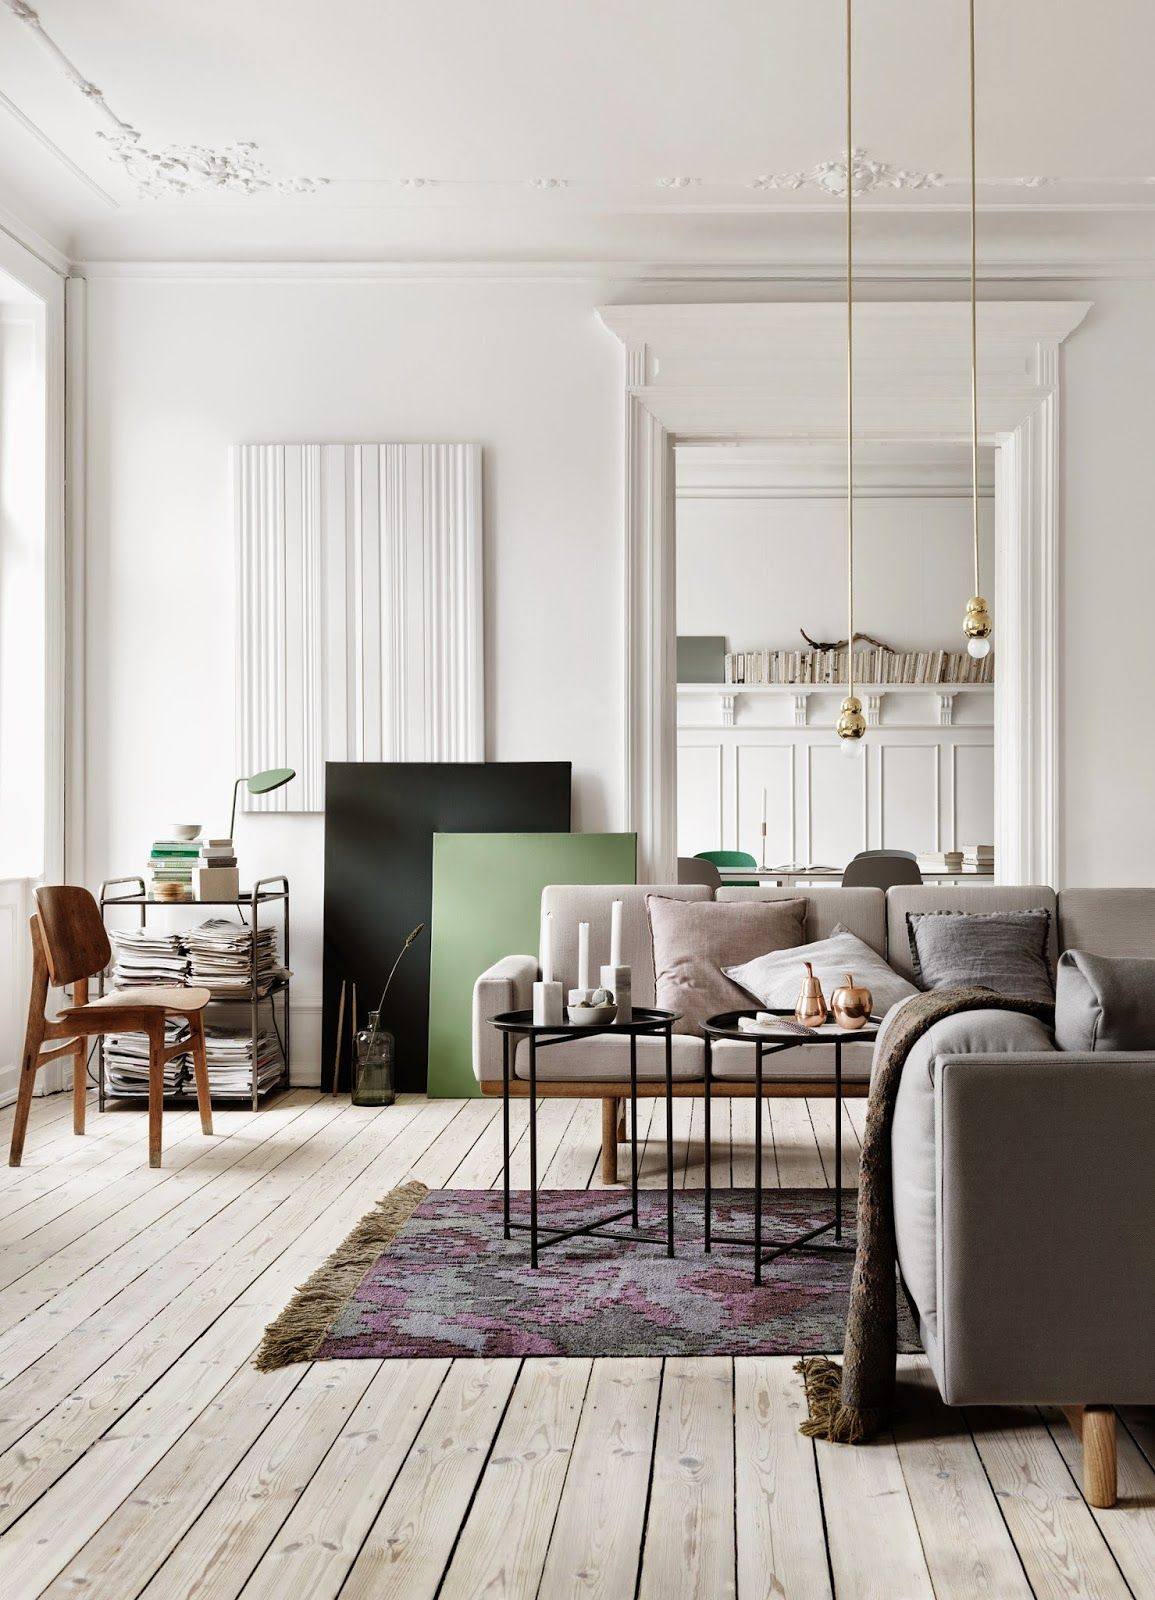 Living cph also     pinterest rooms interiors and room rh